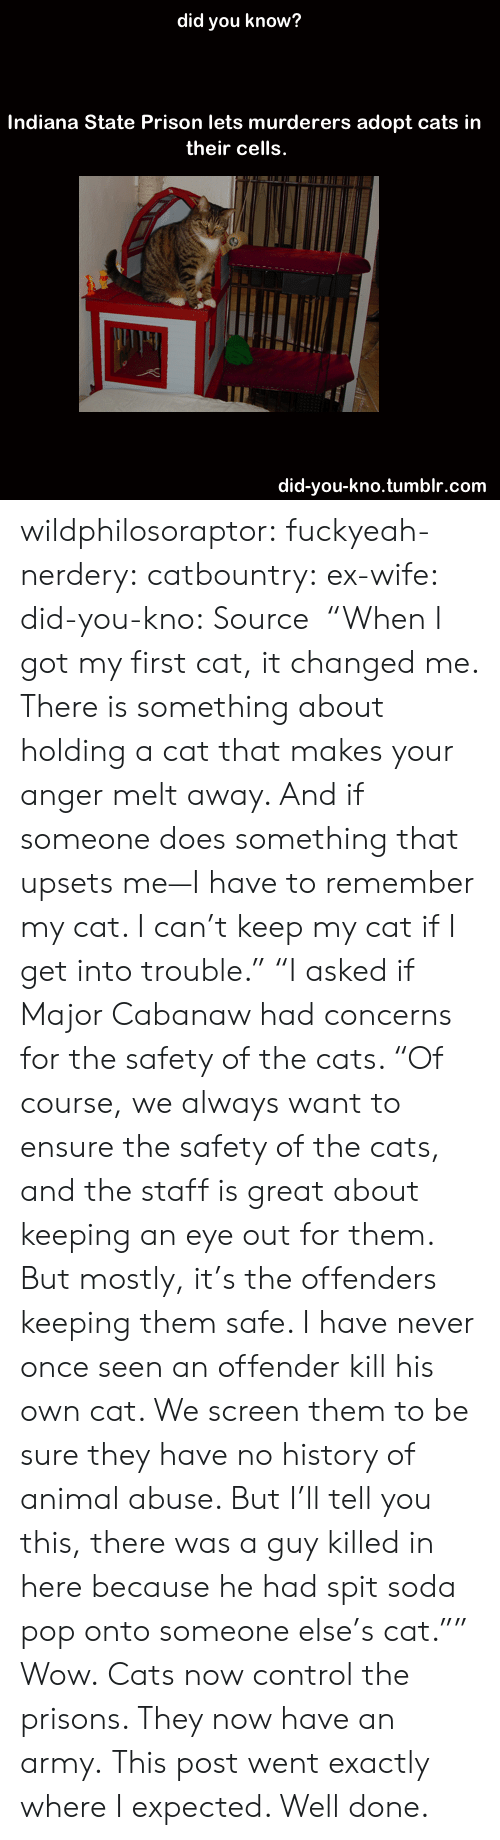 """Cats, Pop, and Soda: did you know?  Indiana State Prison lets murderers adopt cats in  their cells.  did-you-kno.tumblr.com wildphilosoraptor:  fuckyeah-nerdery:  catbountry:  ex-wife:  did-you-kno:  Source  """"When I got my first cat, it changed me. There is something about holding a cat that makes your anger melt away. And if someone does something that upsets me—I have to remember my cat. I can't keep my cat if I get into trouble.""""  """"I asked if Major Cabanaw had concerns for the safety of the cats. """"Of course, we always want to ensure the safety of the cats, and the staff is great about keeping an eye out for them. But mostly, it's the offenders keeping them safe. I have never once seen an offender kill his own cat. We screen them to be sure they have no history of animal abuse. But I'll tell you this, there was a guy killed in here because he had spit soda pop onto someone else's cat."""""""" Wow.  Cats now control the prisons. They now have an army.  This post went exactly where I expected. Well done."""